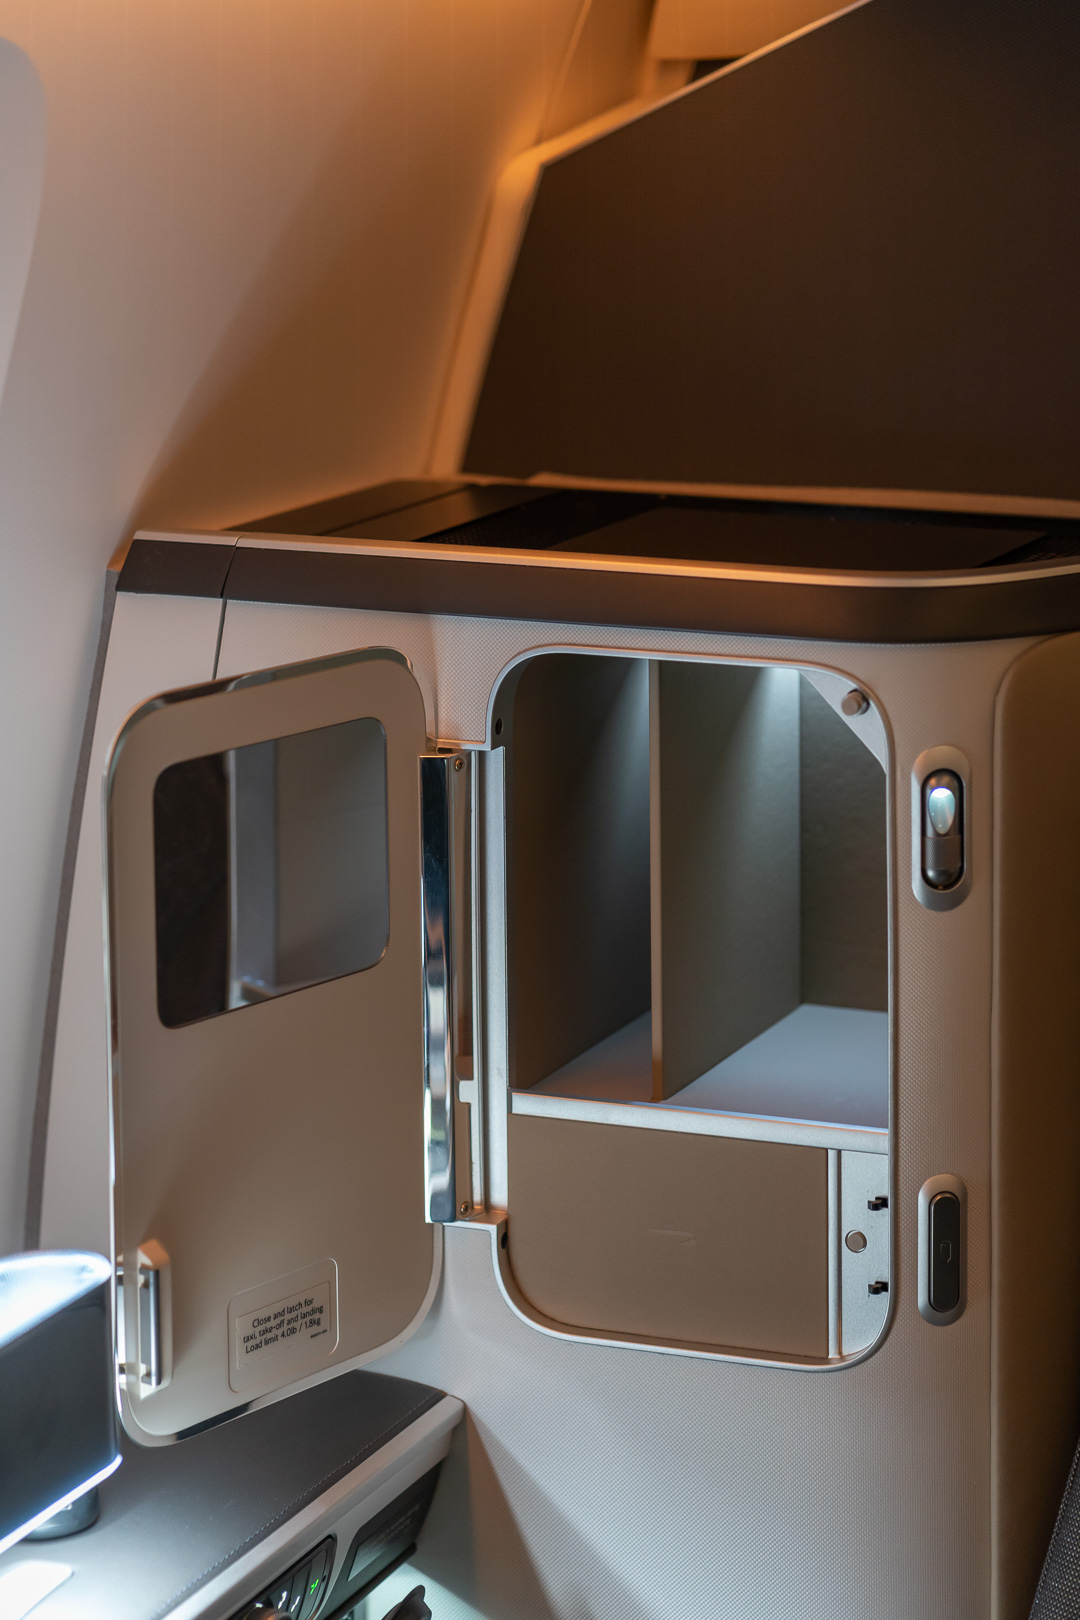 BA 77WN F 10 - REVIEW - British Airways : First Class Suites - B777 - London (LHR) to Malé (MLE) - [COVID-era]